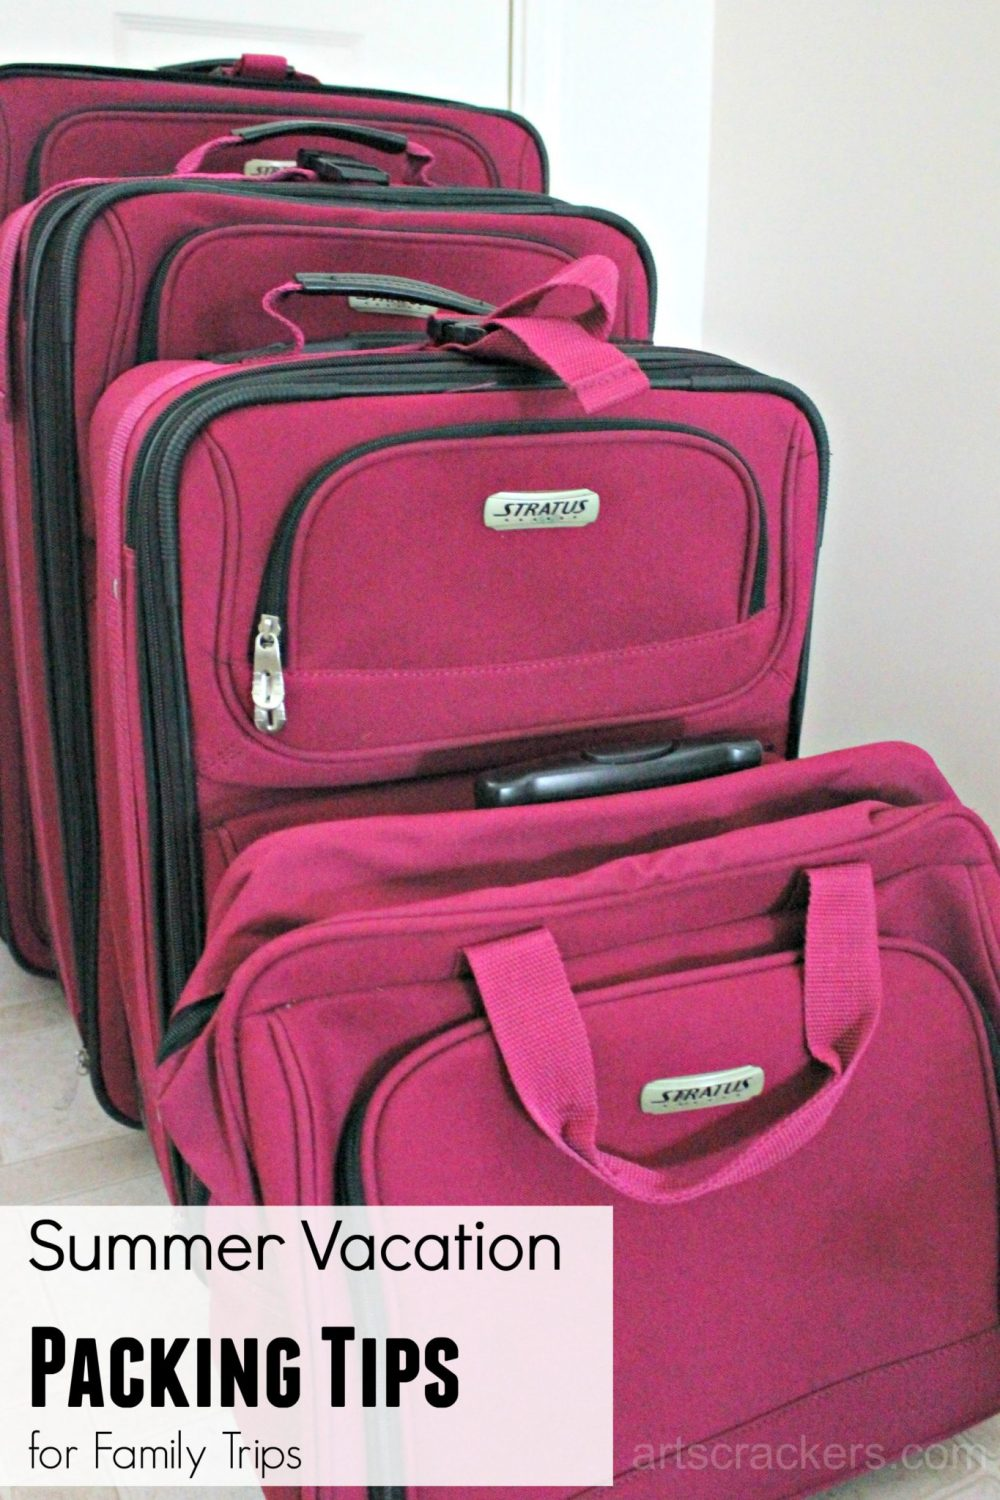 Summer Vacation Packing Tips for Family Trips